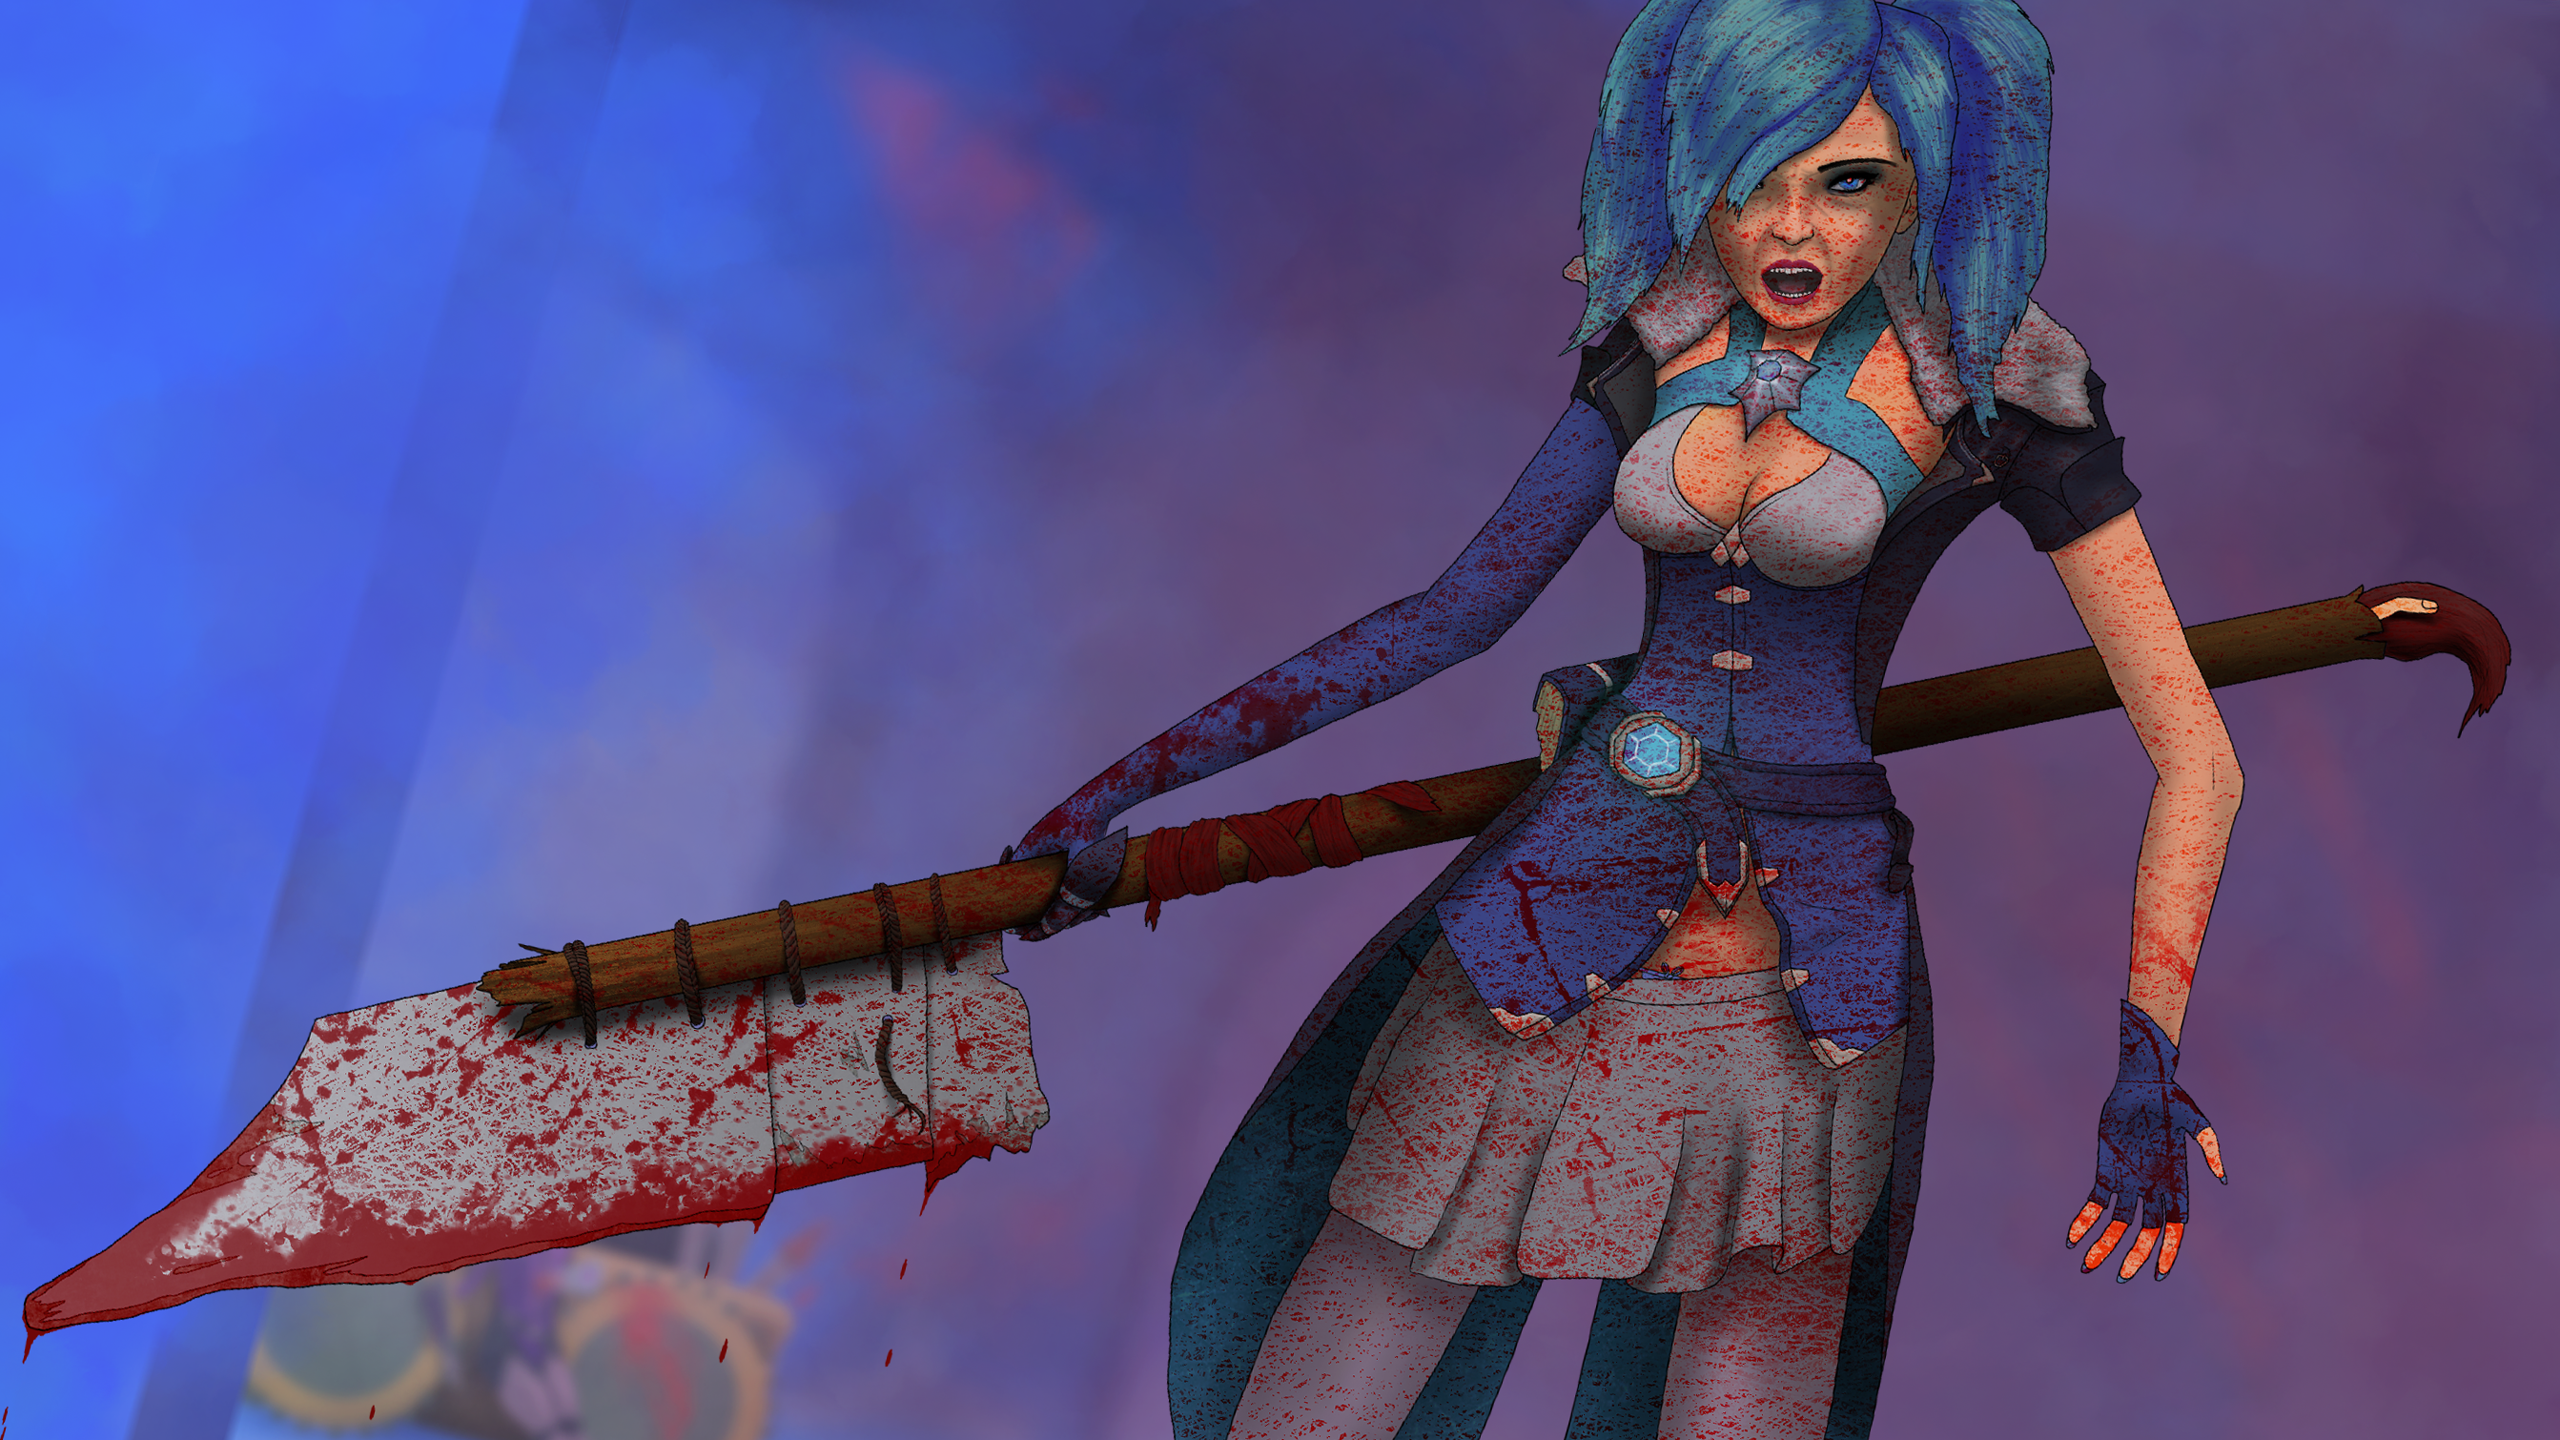 Mad Evie fanart (bloody version)